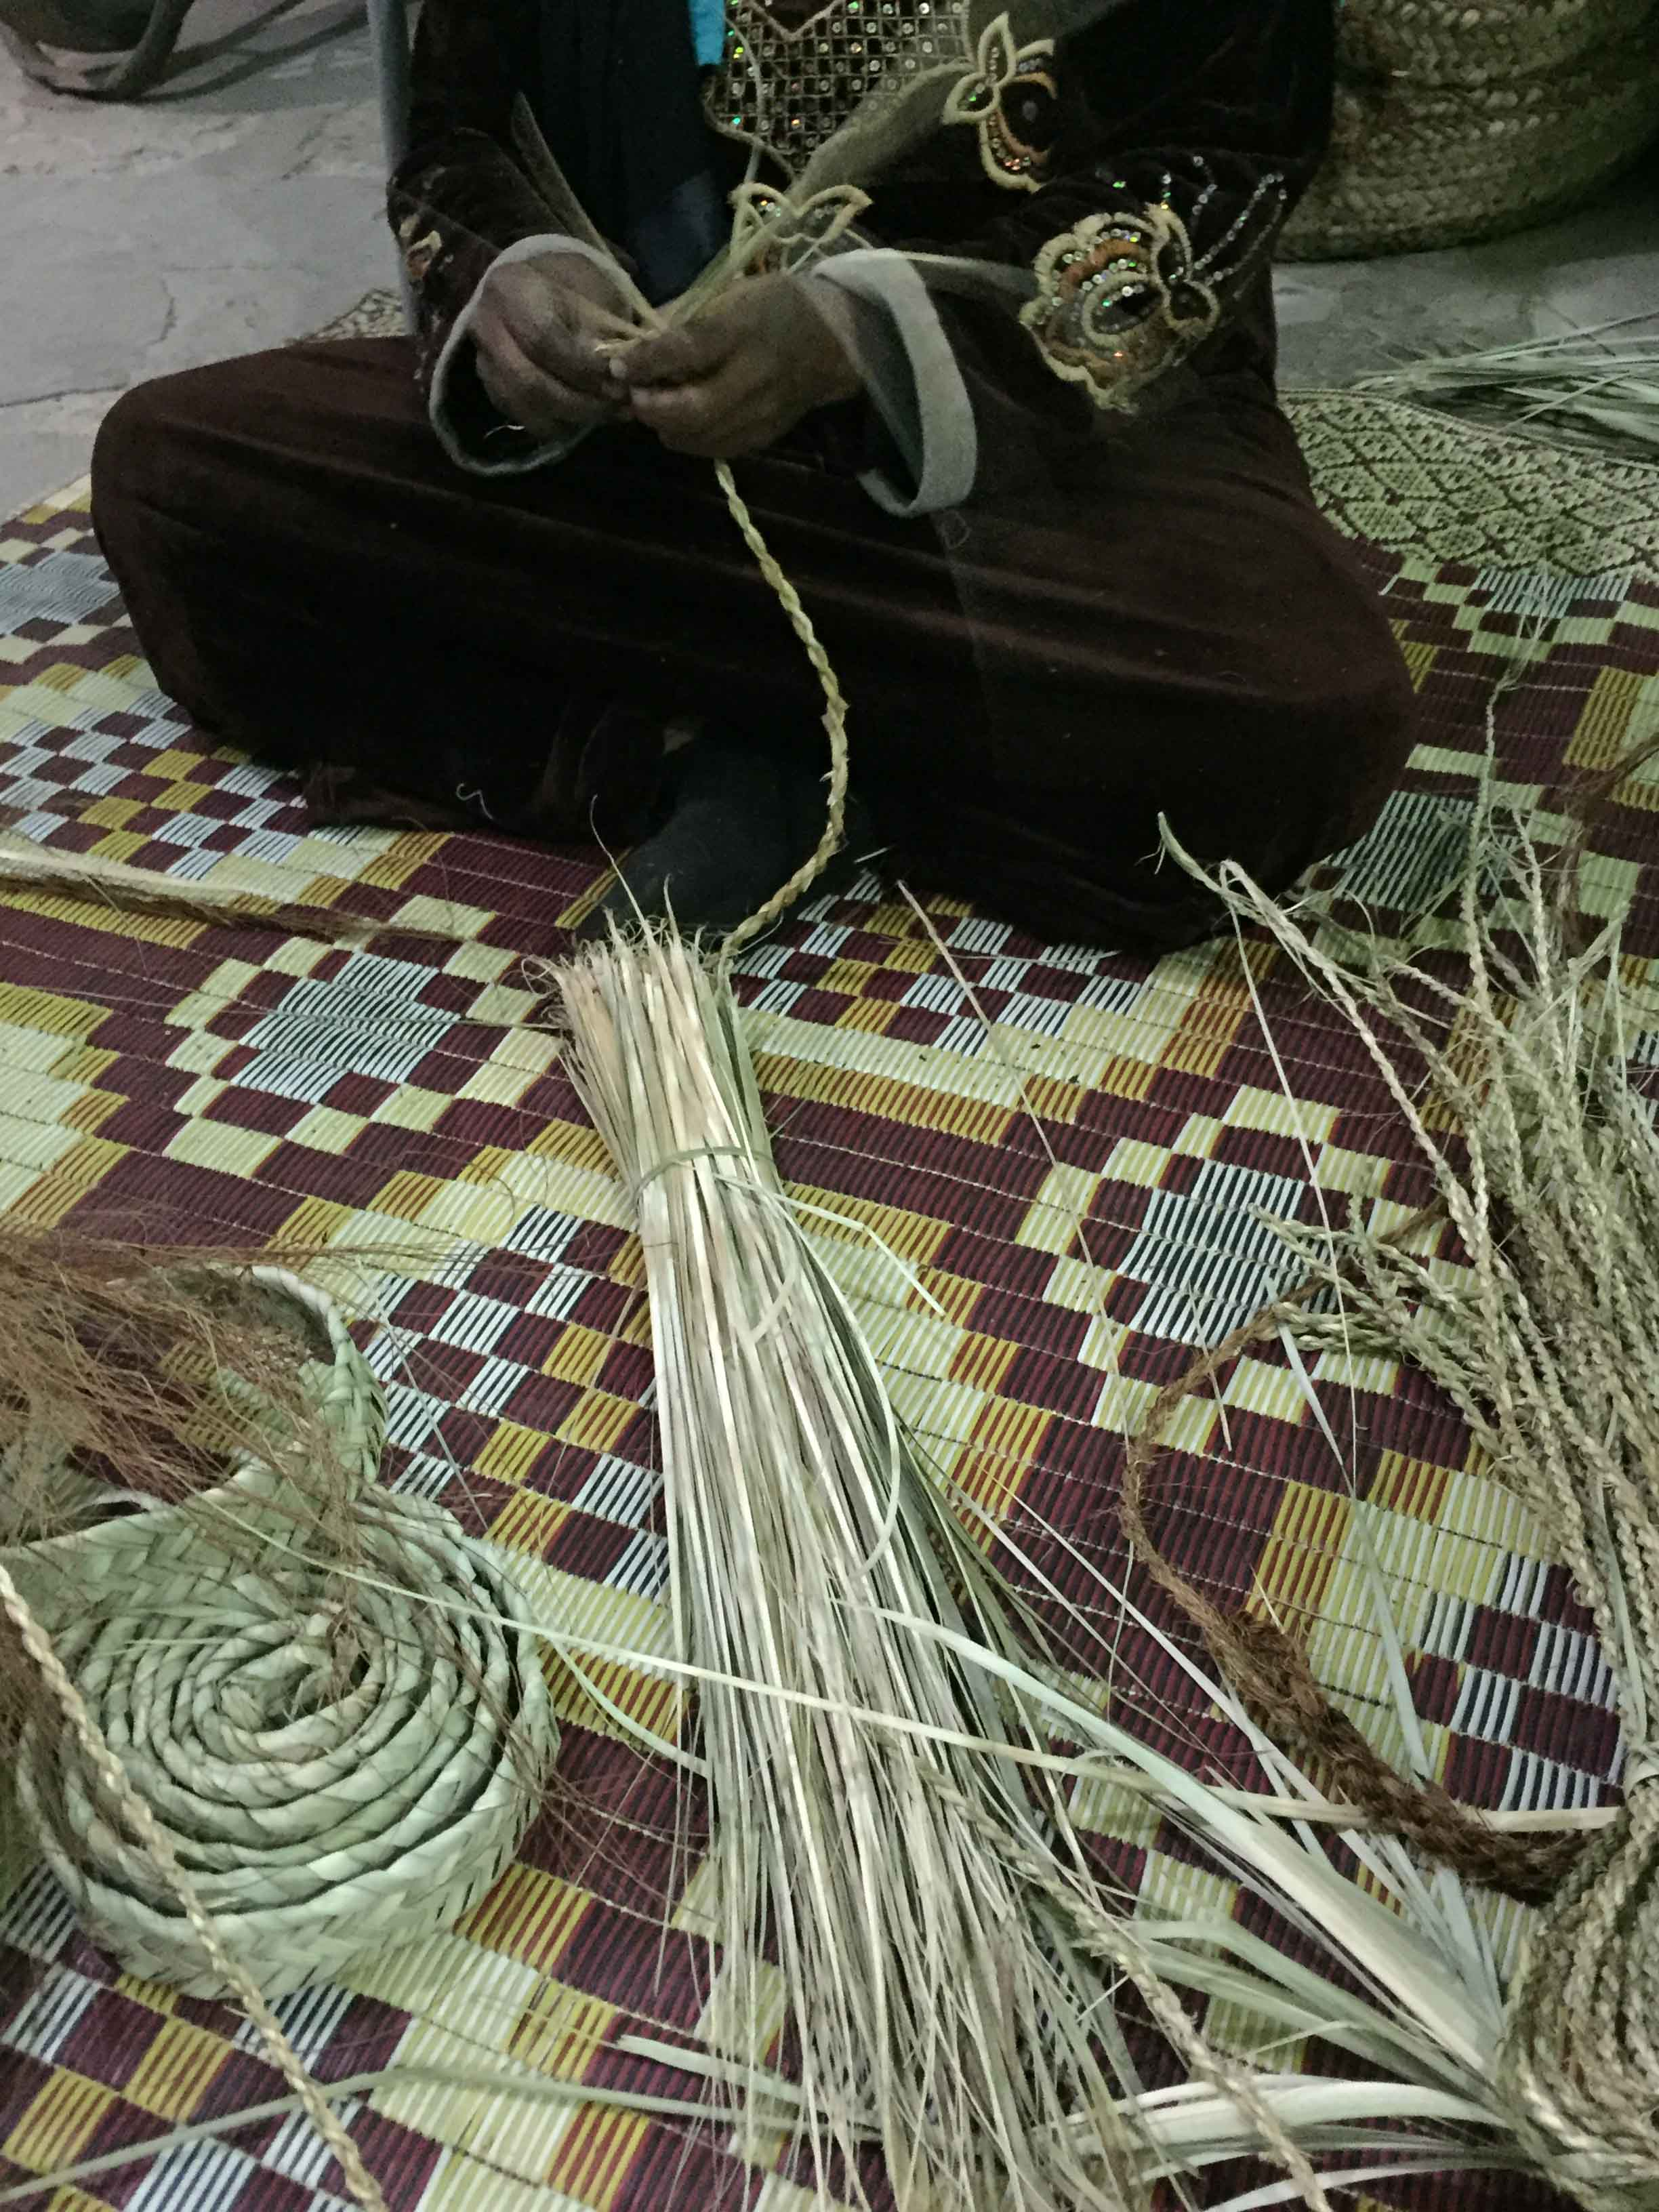 Fig. 15. Rolled band of pressed, woven, soaked, and cleaned palm fronds that will become a basket (left) next to a bunch of rough-cut palm fronds (center) used to make the braided twine (right) that serves as thread for sewing the basket together. Photo: Wendy Doyon / North Abydos Expedition © 2019